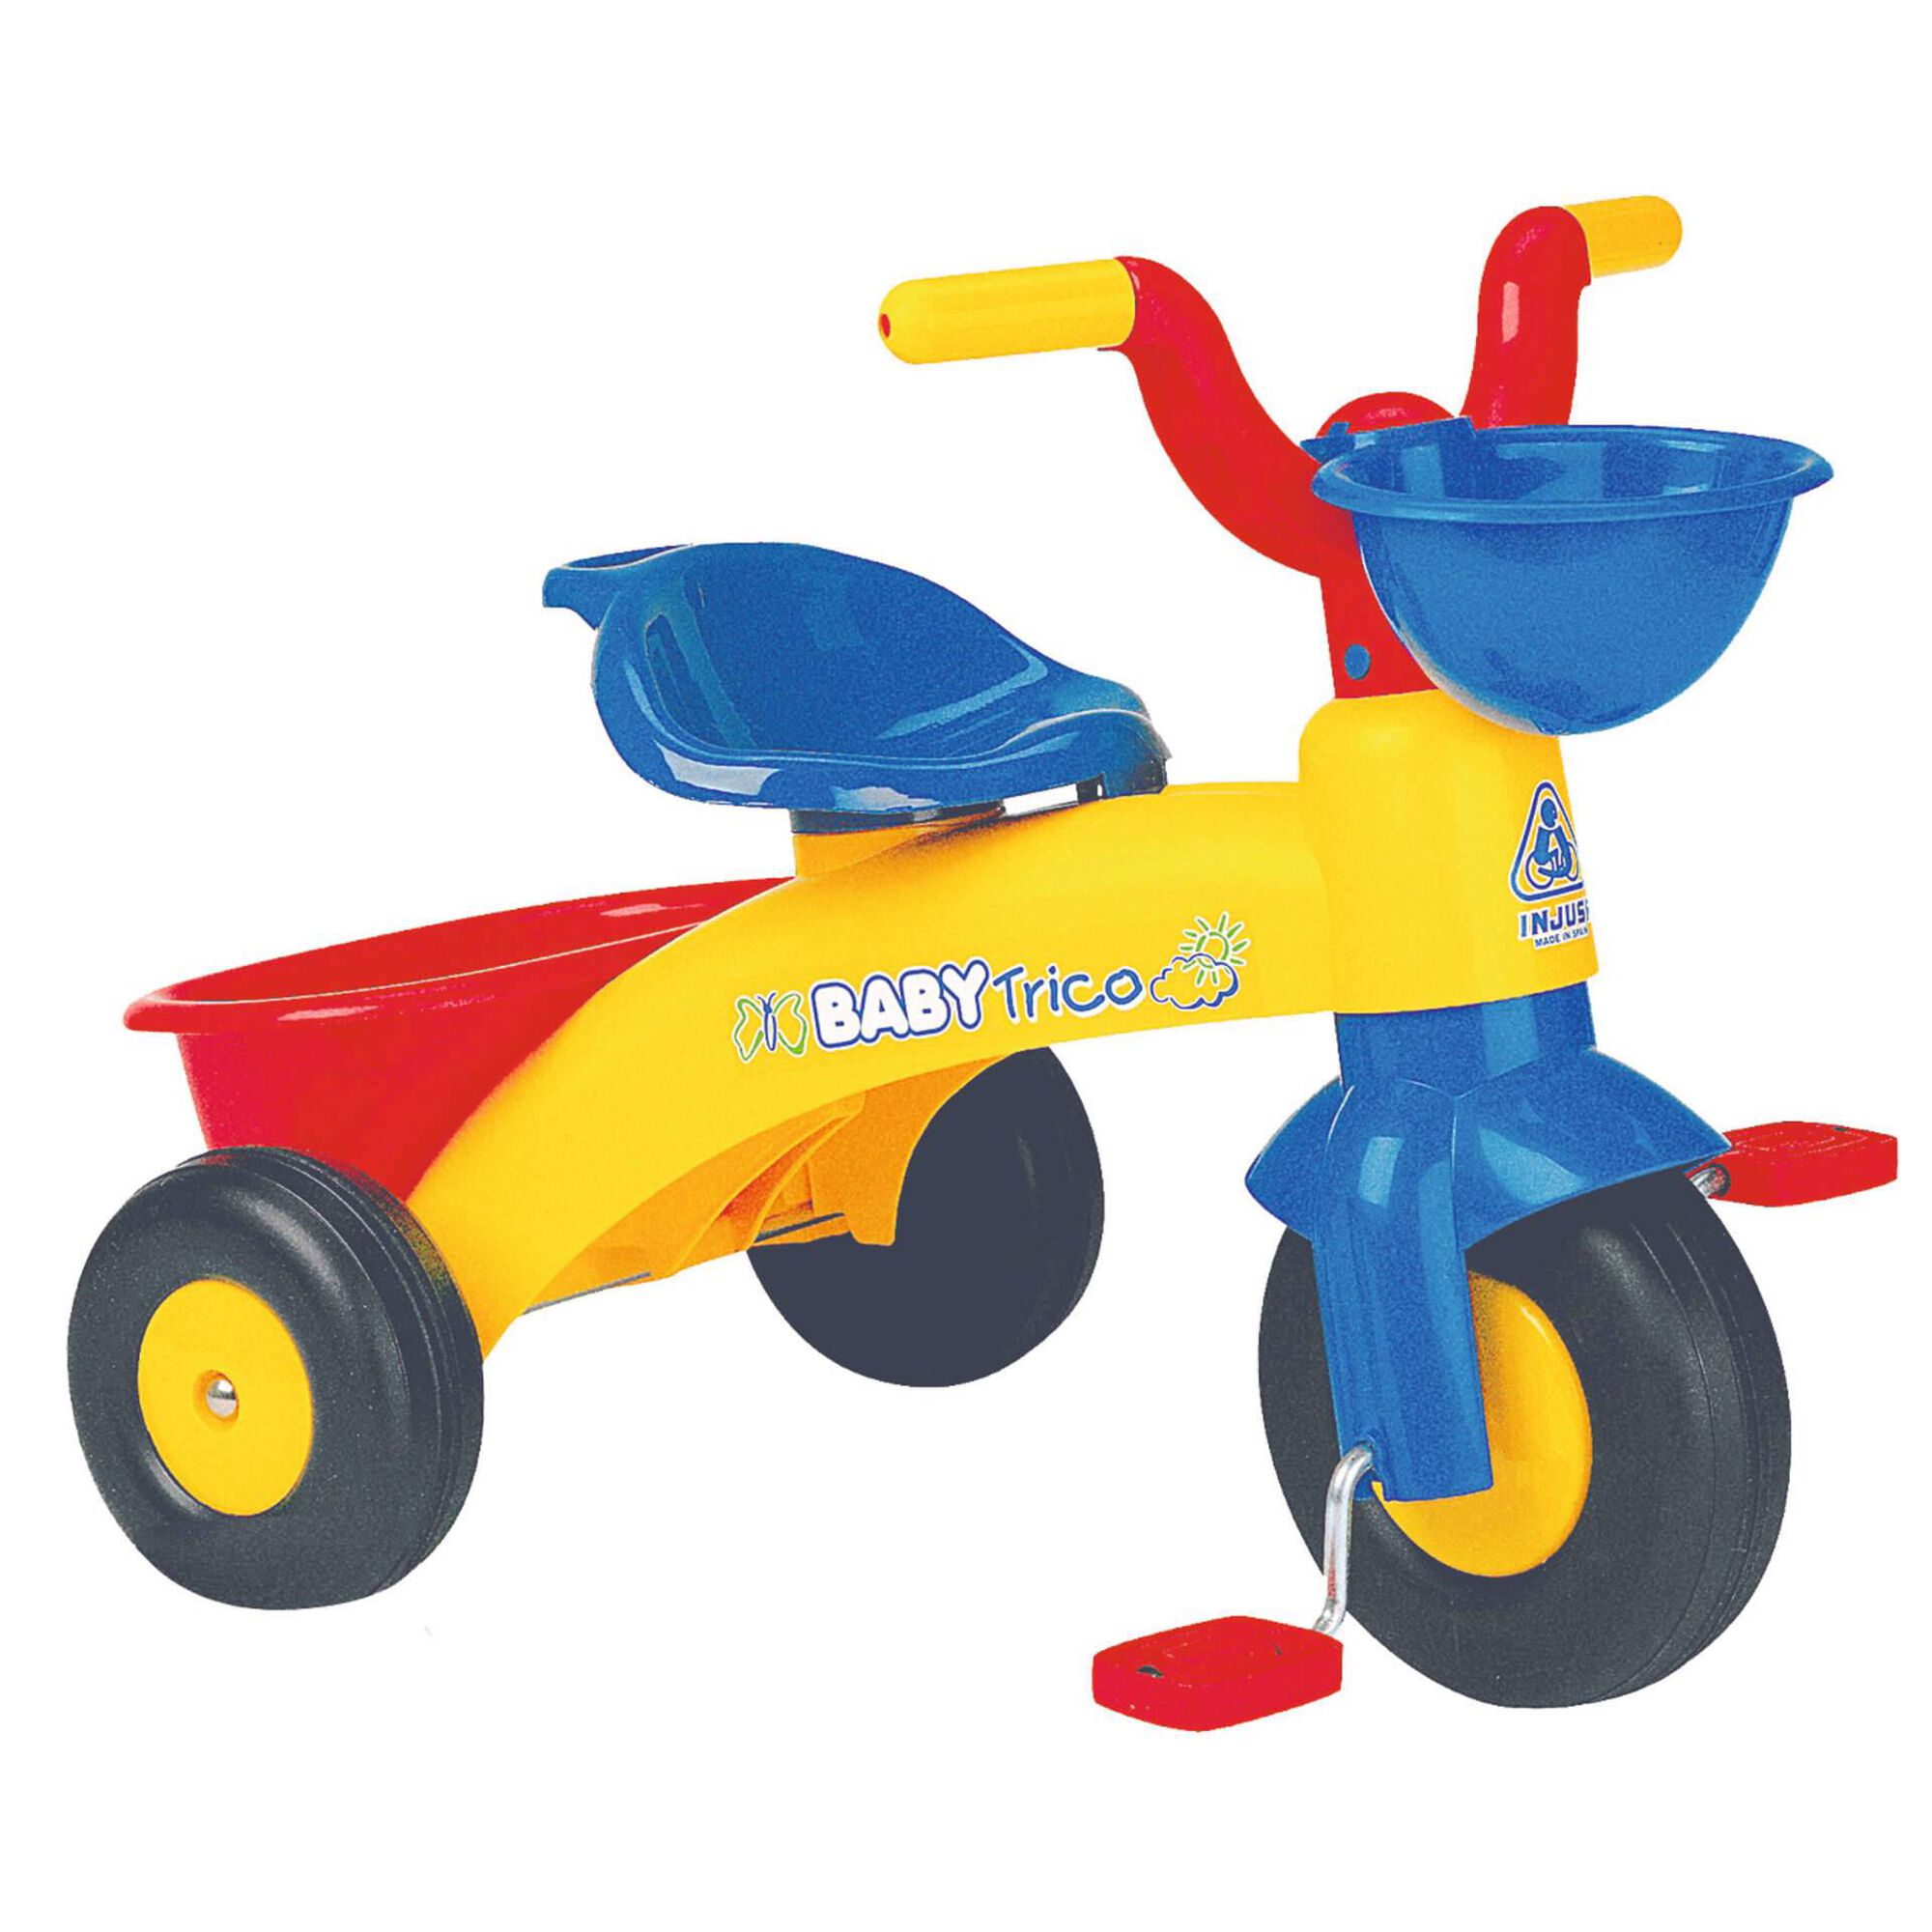 Triciclo Baby Trico Max